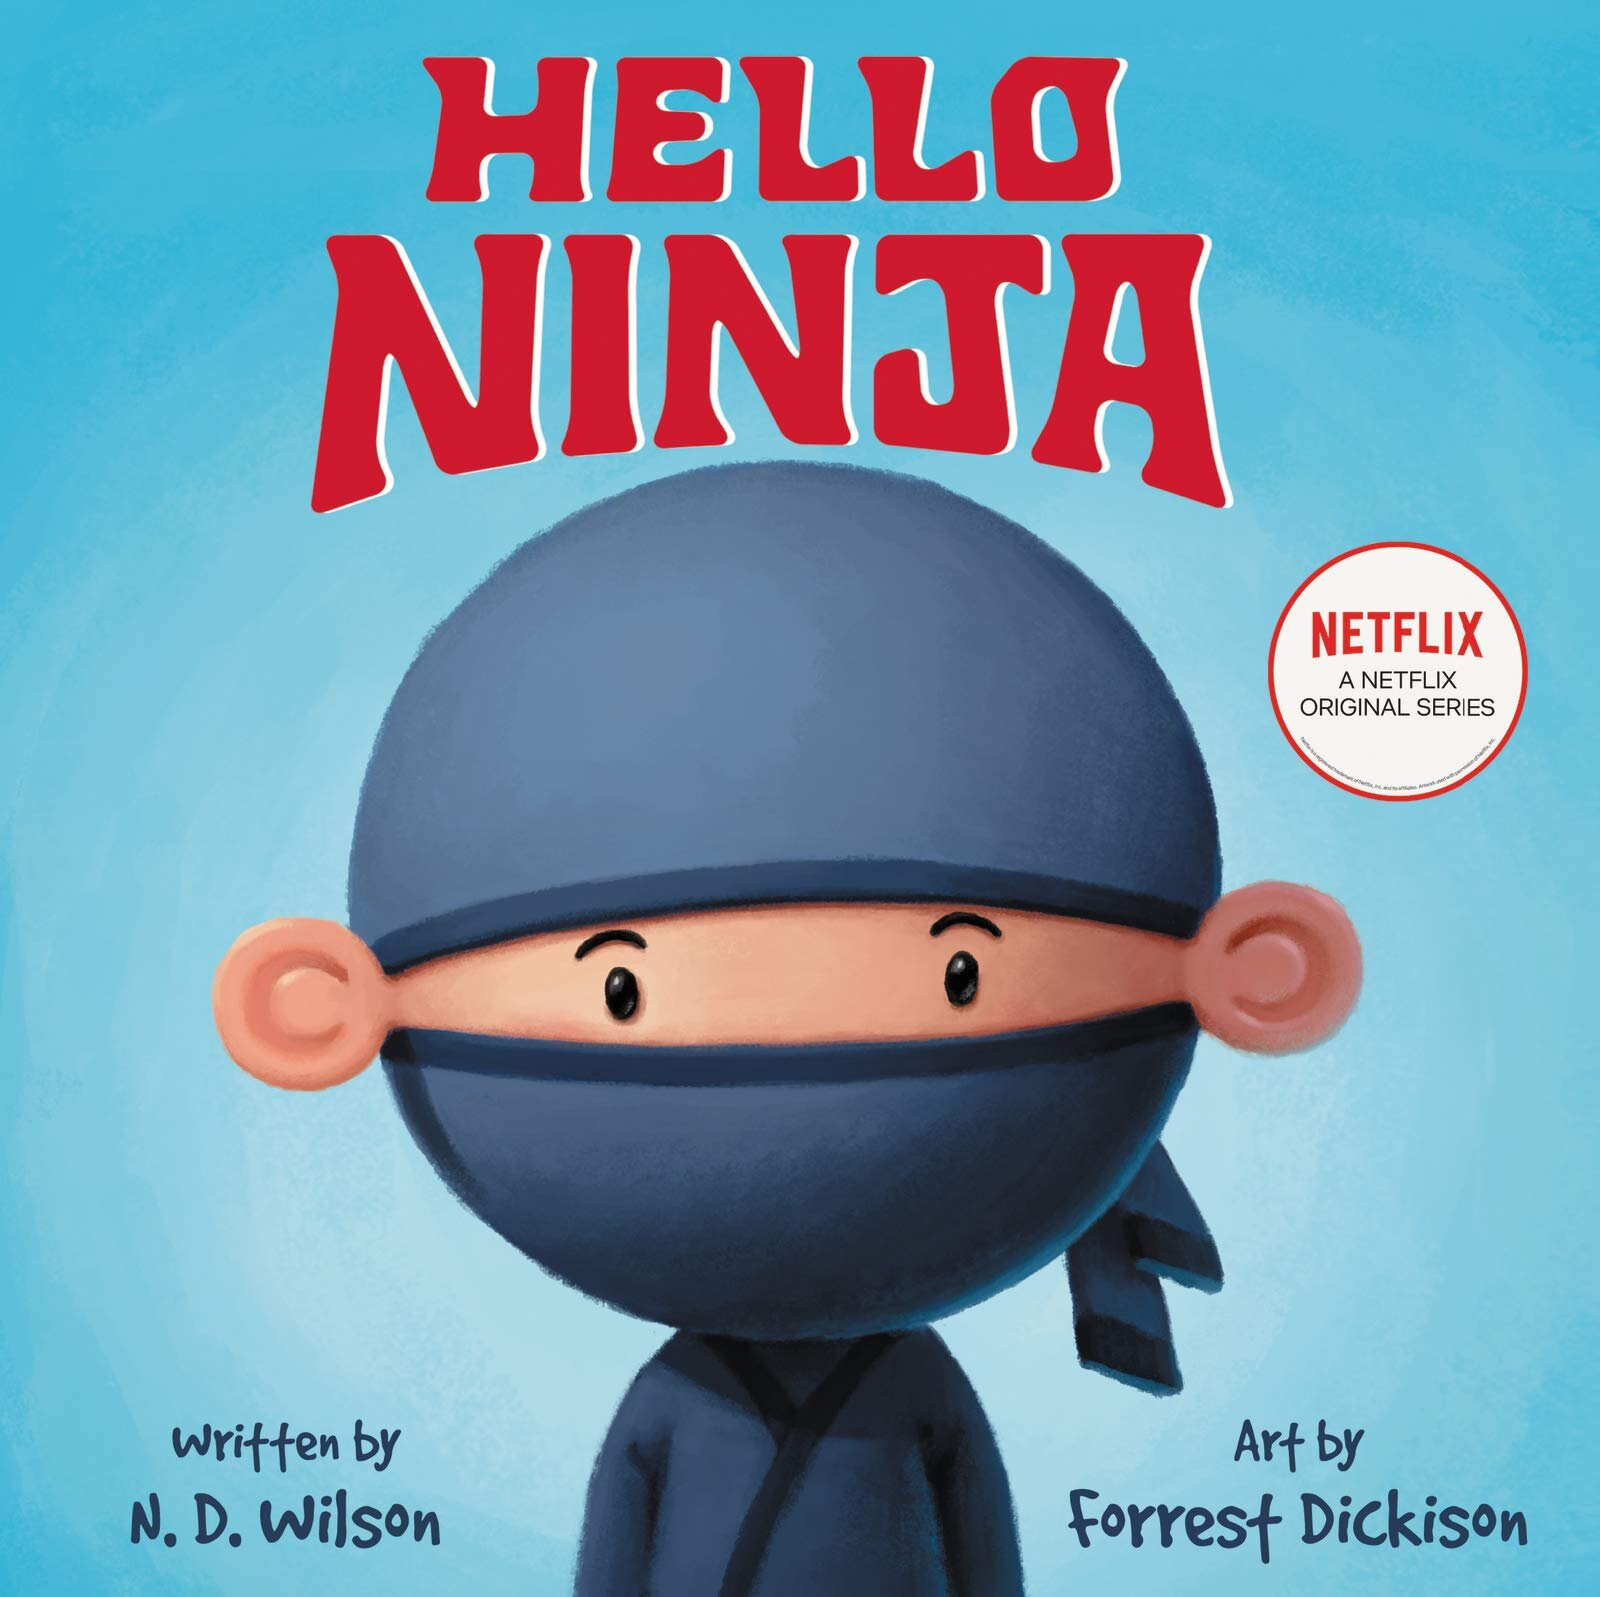 """SPOTLIGHT ON: HELLO NINJA!   Our researcher for the series, Debra, is super excited for this series. In her spare time she works on her own animations so this is quite close to home!  Hello Ninja! follows Wesley and his best friend Georgie and the many adventures they embark on. Once Wesley puts his hands together, bows to his reflection and says the words, """"Hello, Ninja"""" his surroundings instantly transform into an enchanting Ninja world.  The highly anticipated CGI animated series is based on the picture book of the same name from author N.D. Wilson. The series was developed by Atomic Cartoons for Netflix as part of their new line-up of children's animated series.  #helloninja #atomiccartoons #theresearchhouse #scriptclearances #clearancereport #filmclearances #titlereports #netflix"""